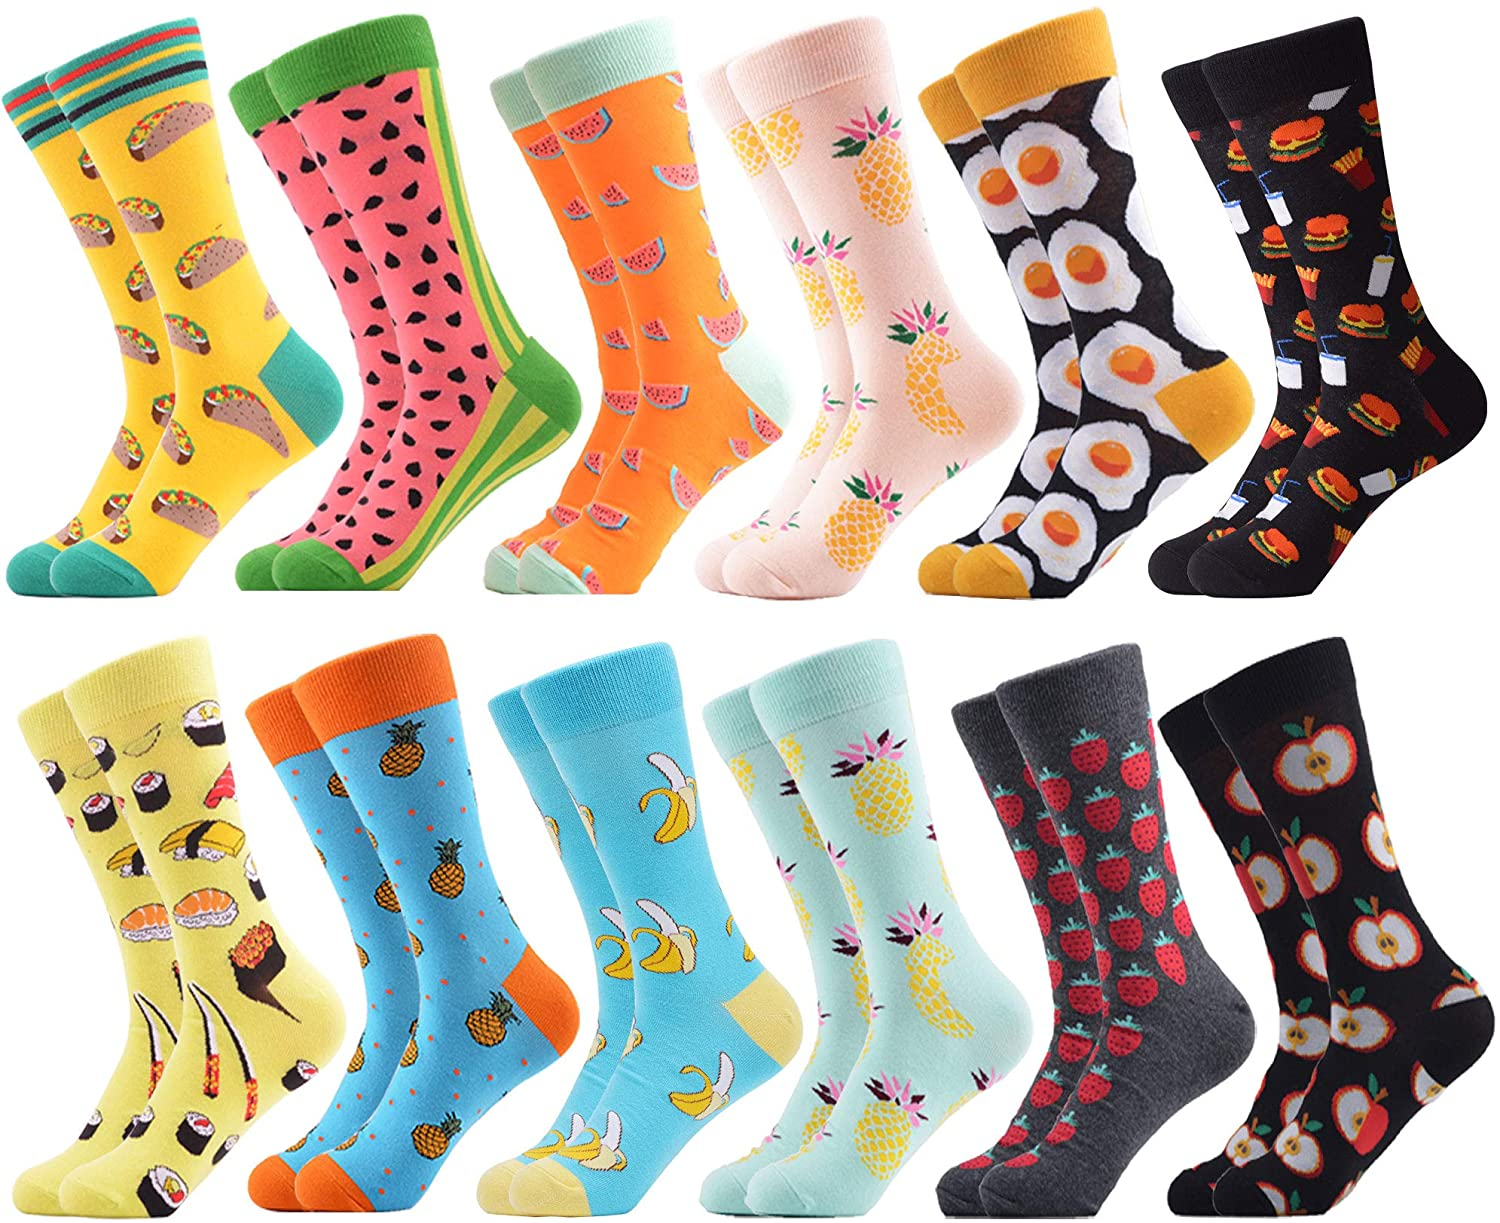 WeciBor Men's Funny Crazy Colorful Patterned Combed Cotton Novelty Crew Socks